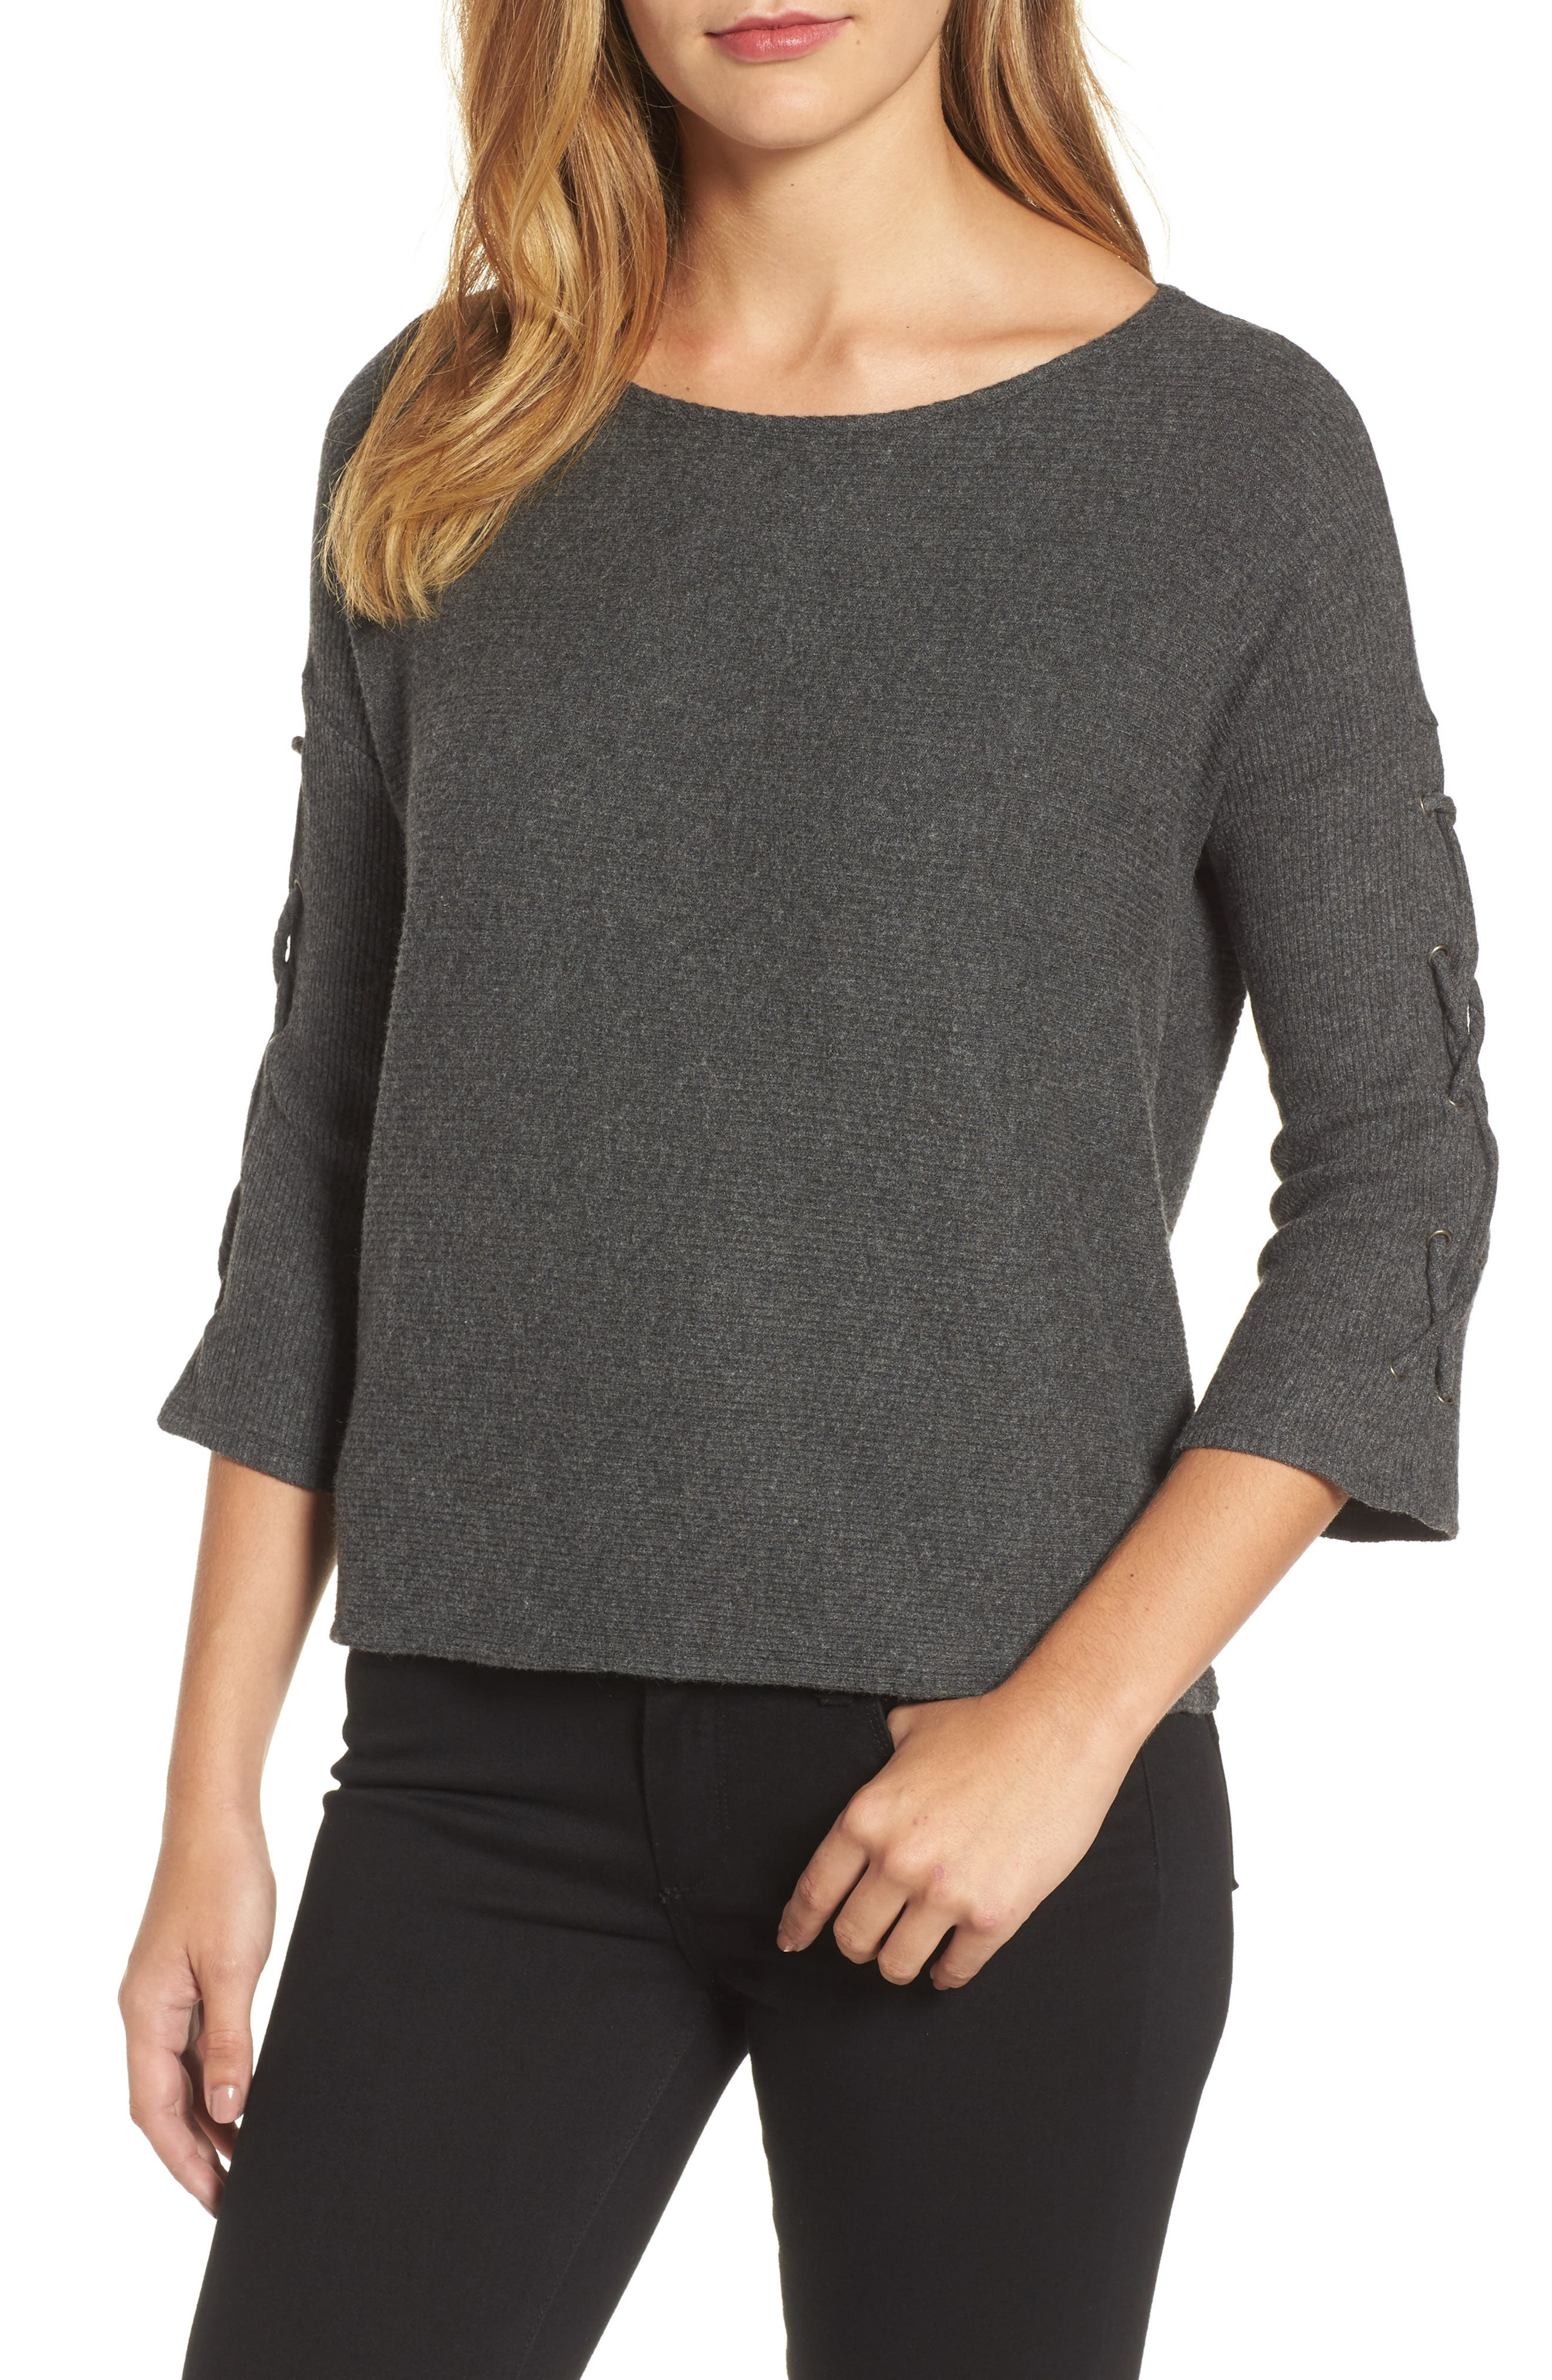 Main Image - Velvet by Graham & Spencer Lace-Up Sleeve Ribbed Top